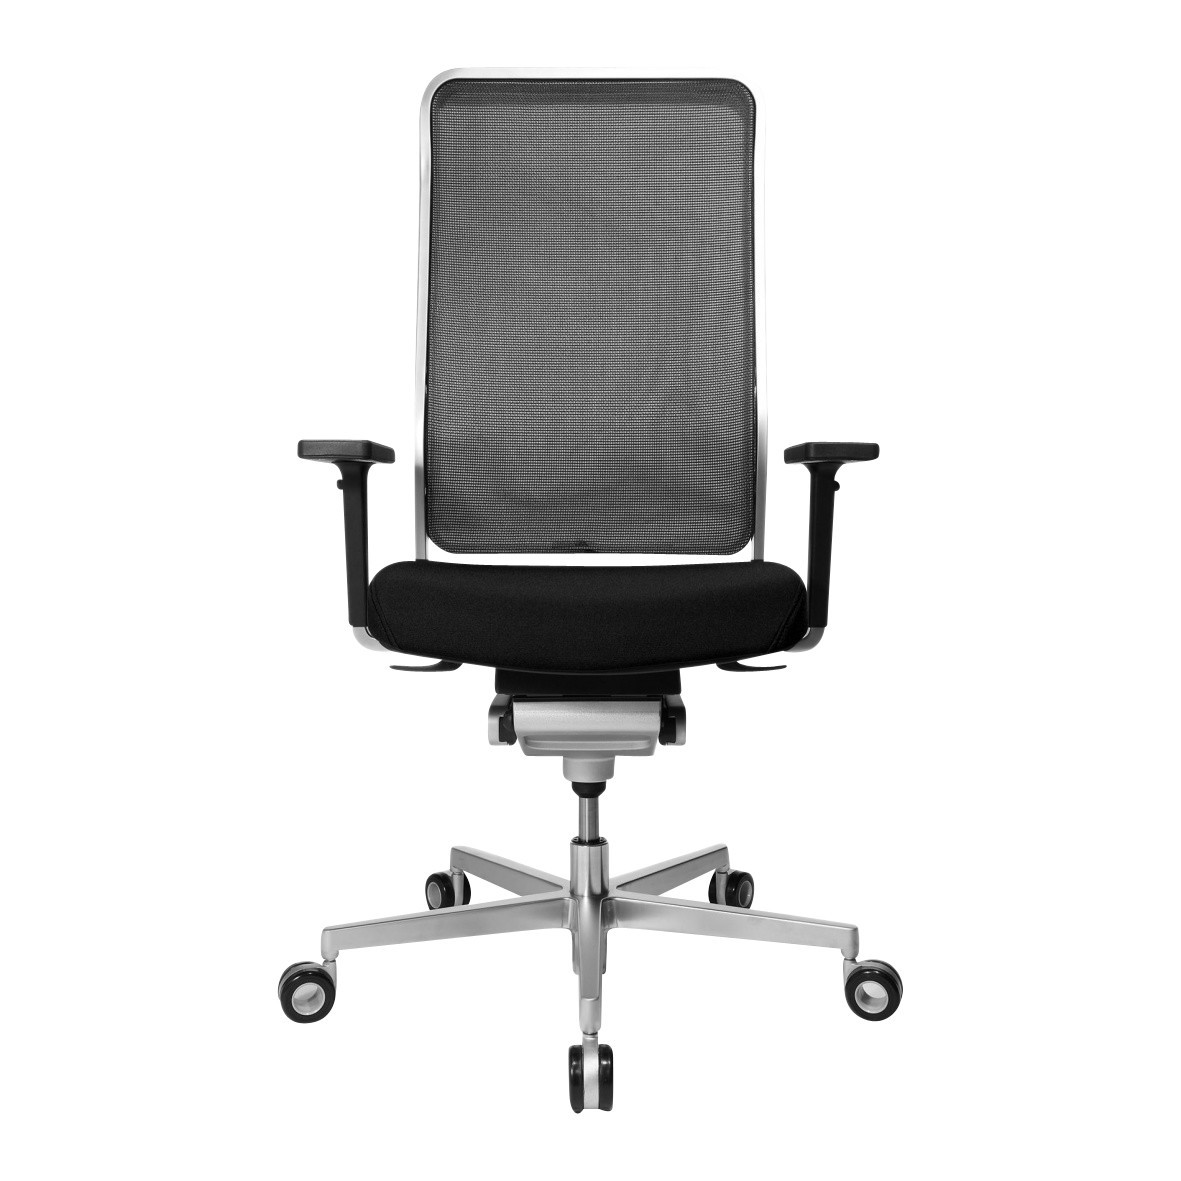 Wagner W1 High - Silla de oficina | AmbienteDirect